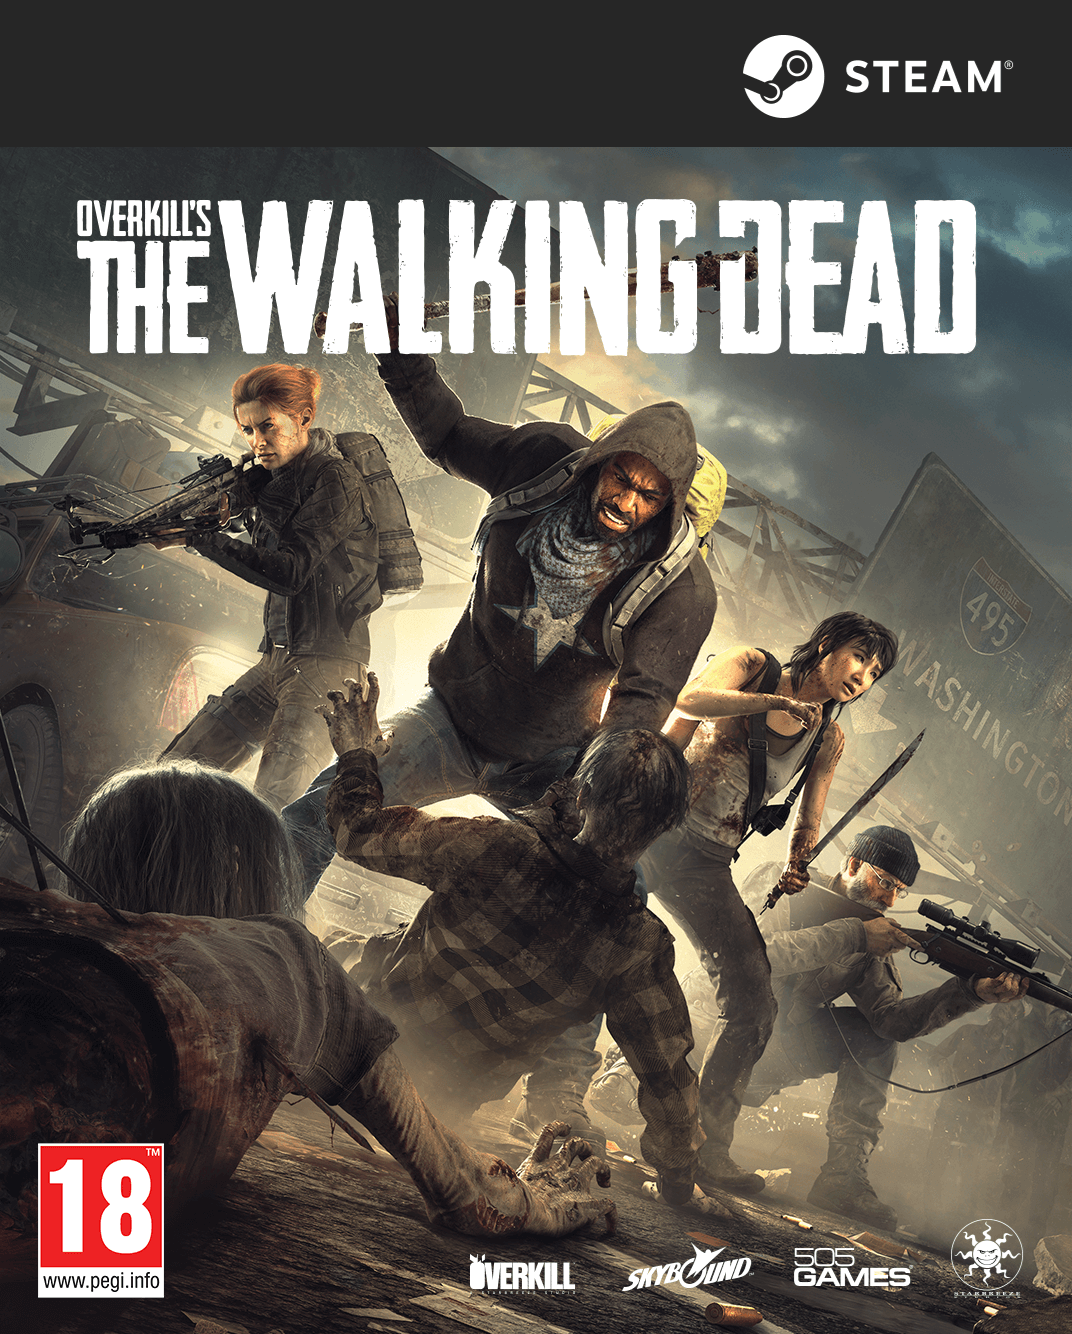 OVERKILL's The Walking Dead - Starter Edition